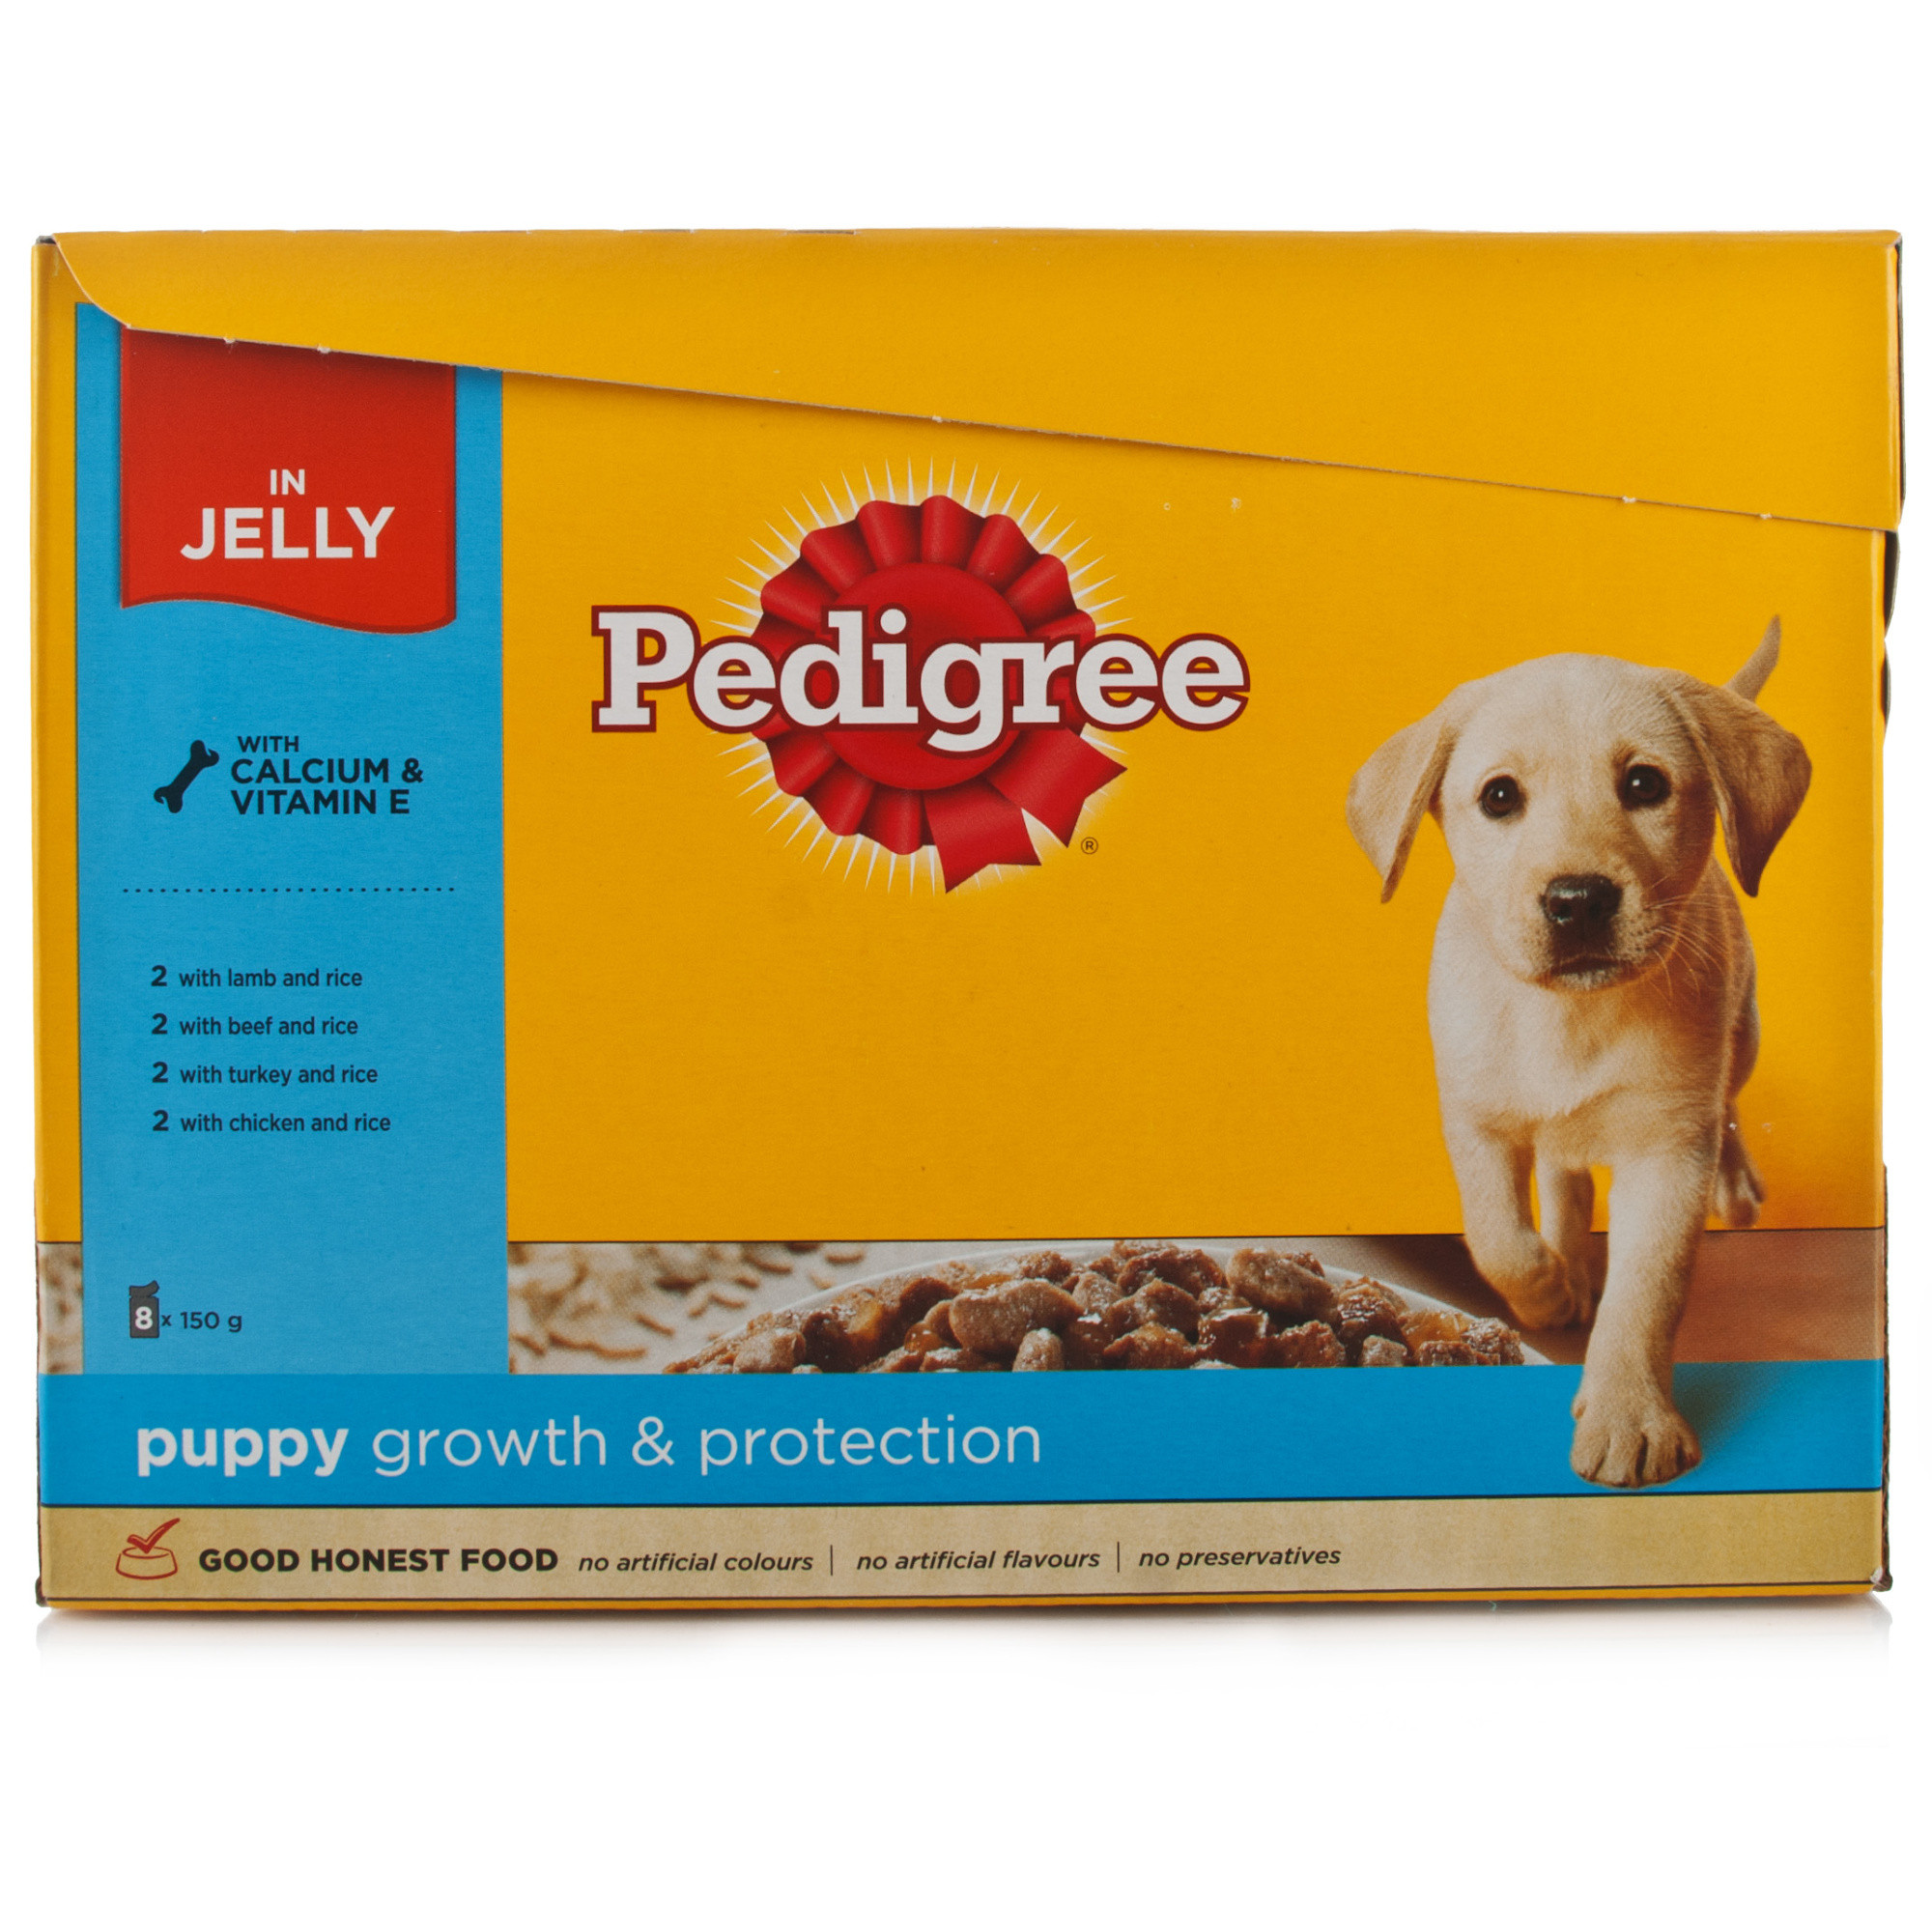 Pedigree Puppy Pouch